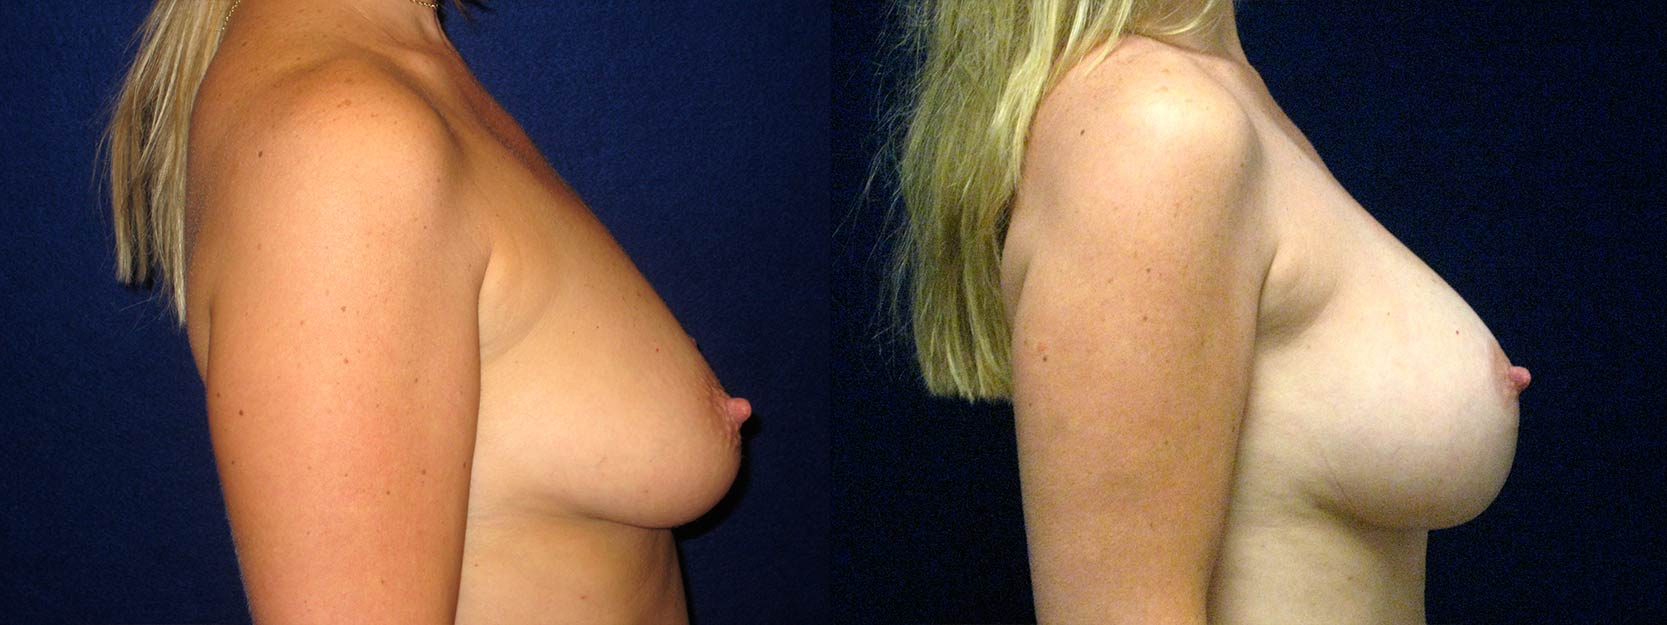 Right Profile View - Breast Augmentation with Lift - Silicone Implants